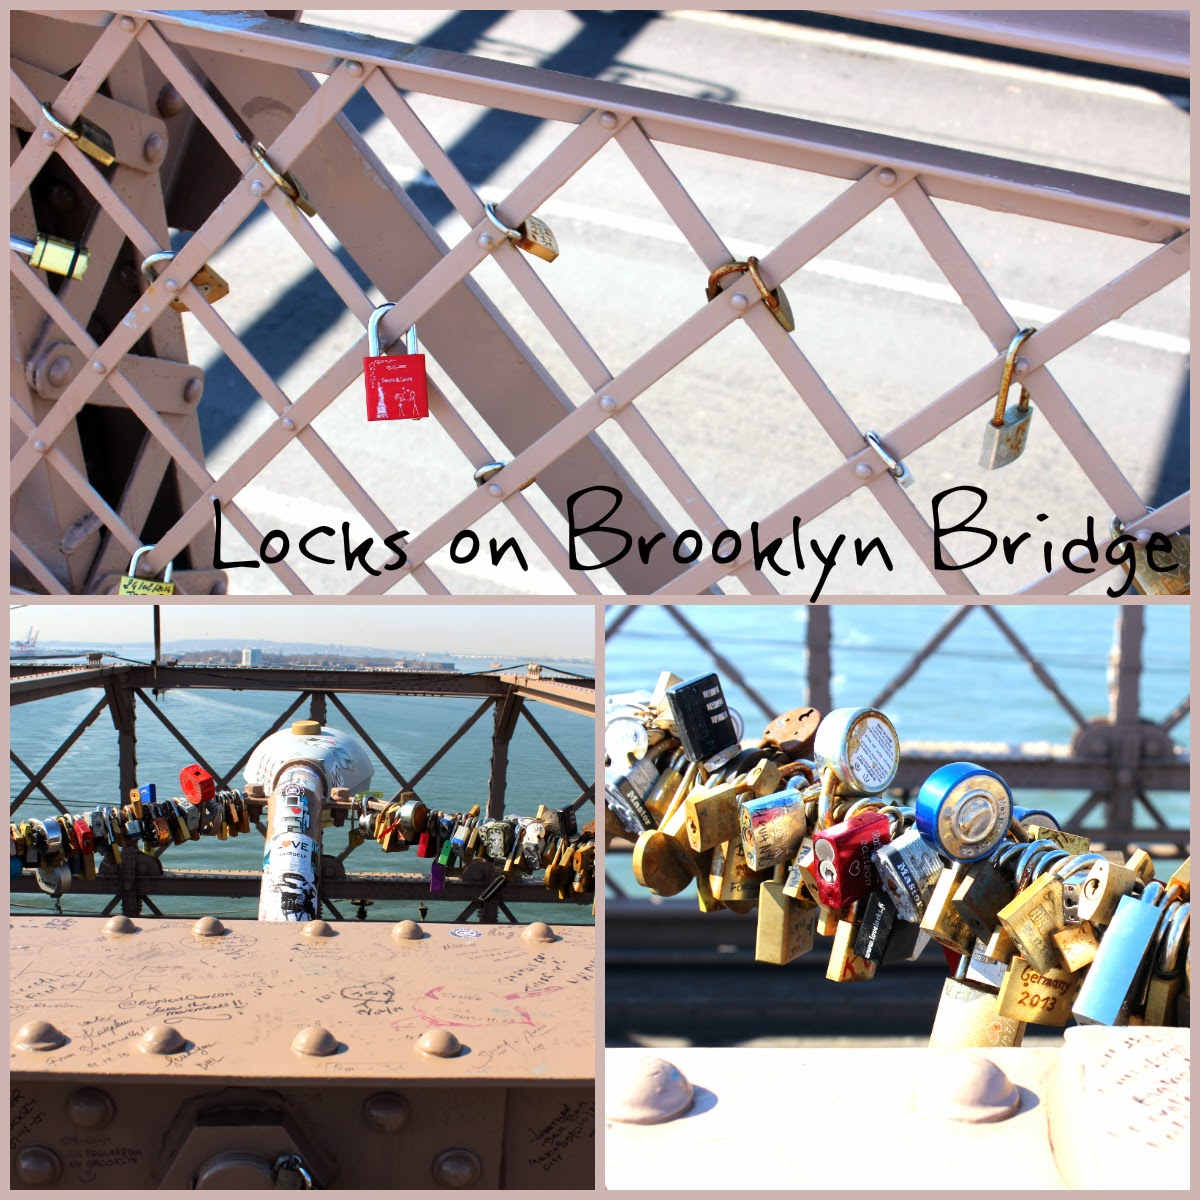 Brooklyn Bridge Locks